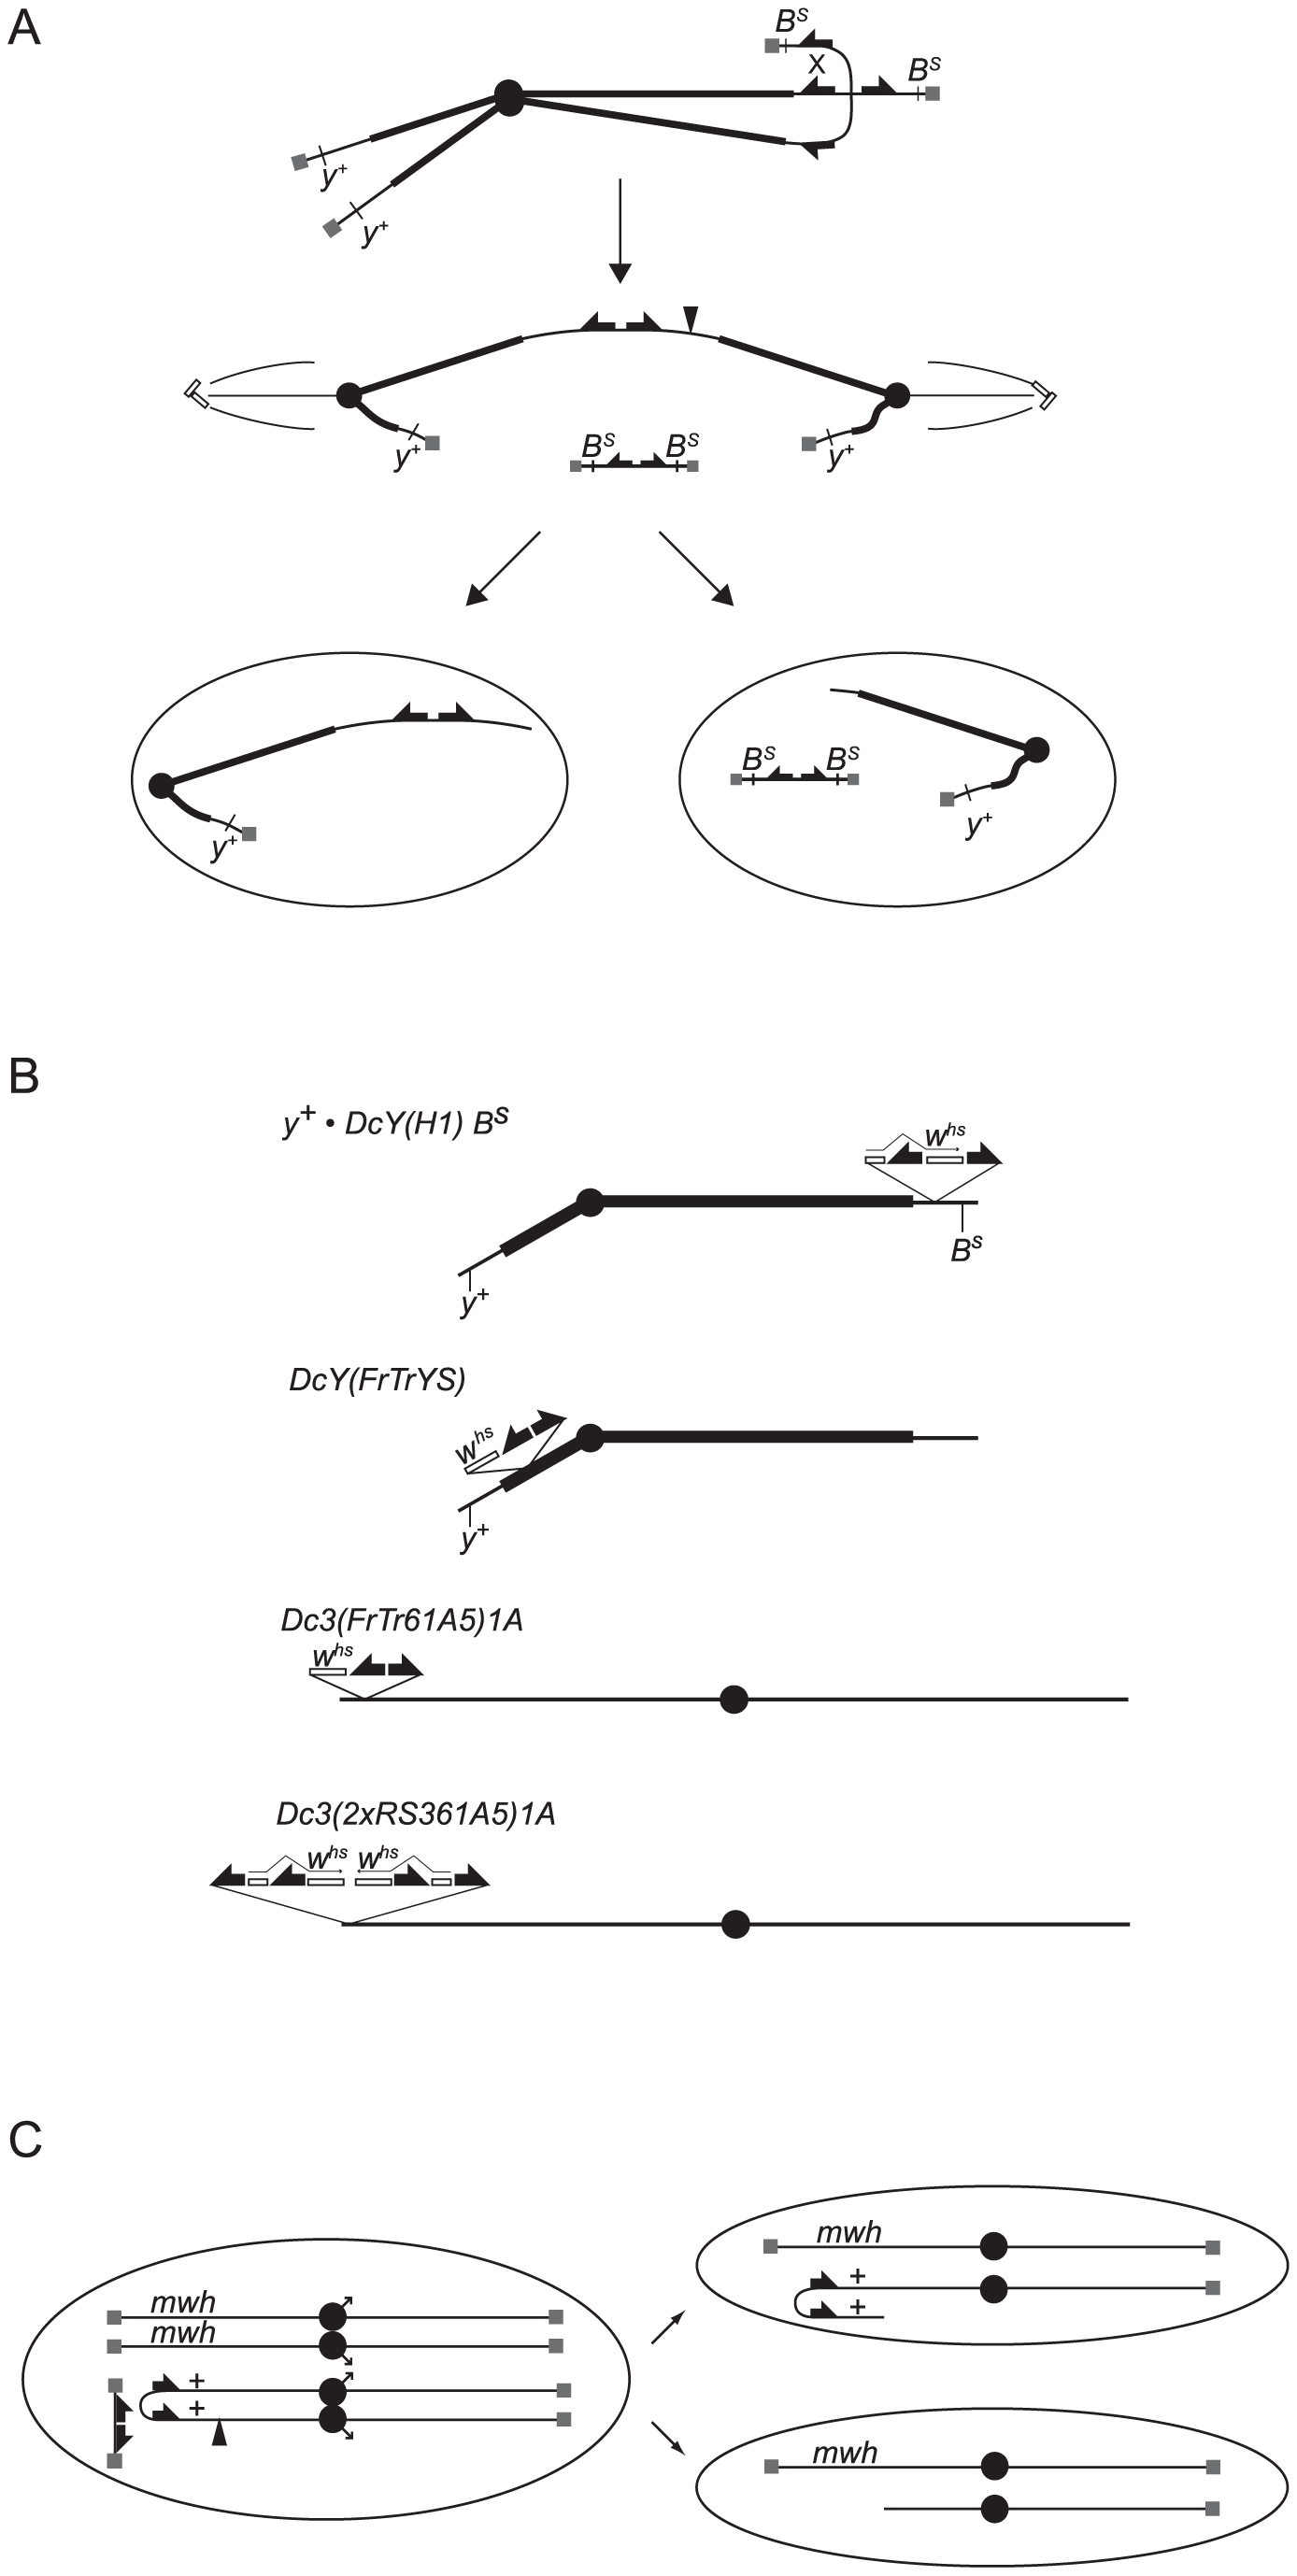 Graphical depiction of assays and chromosomes employed in this work.